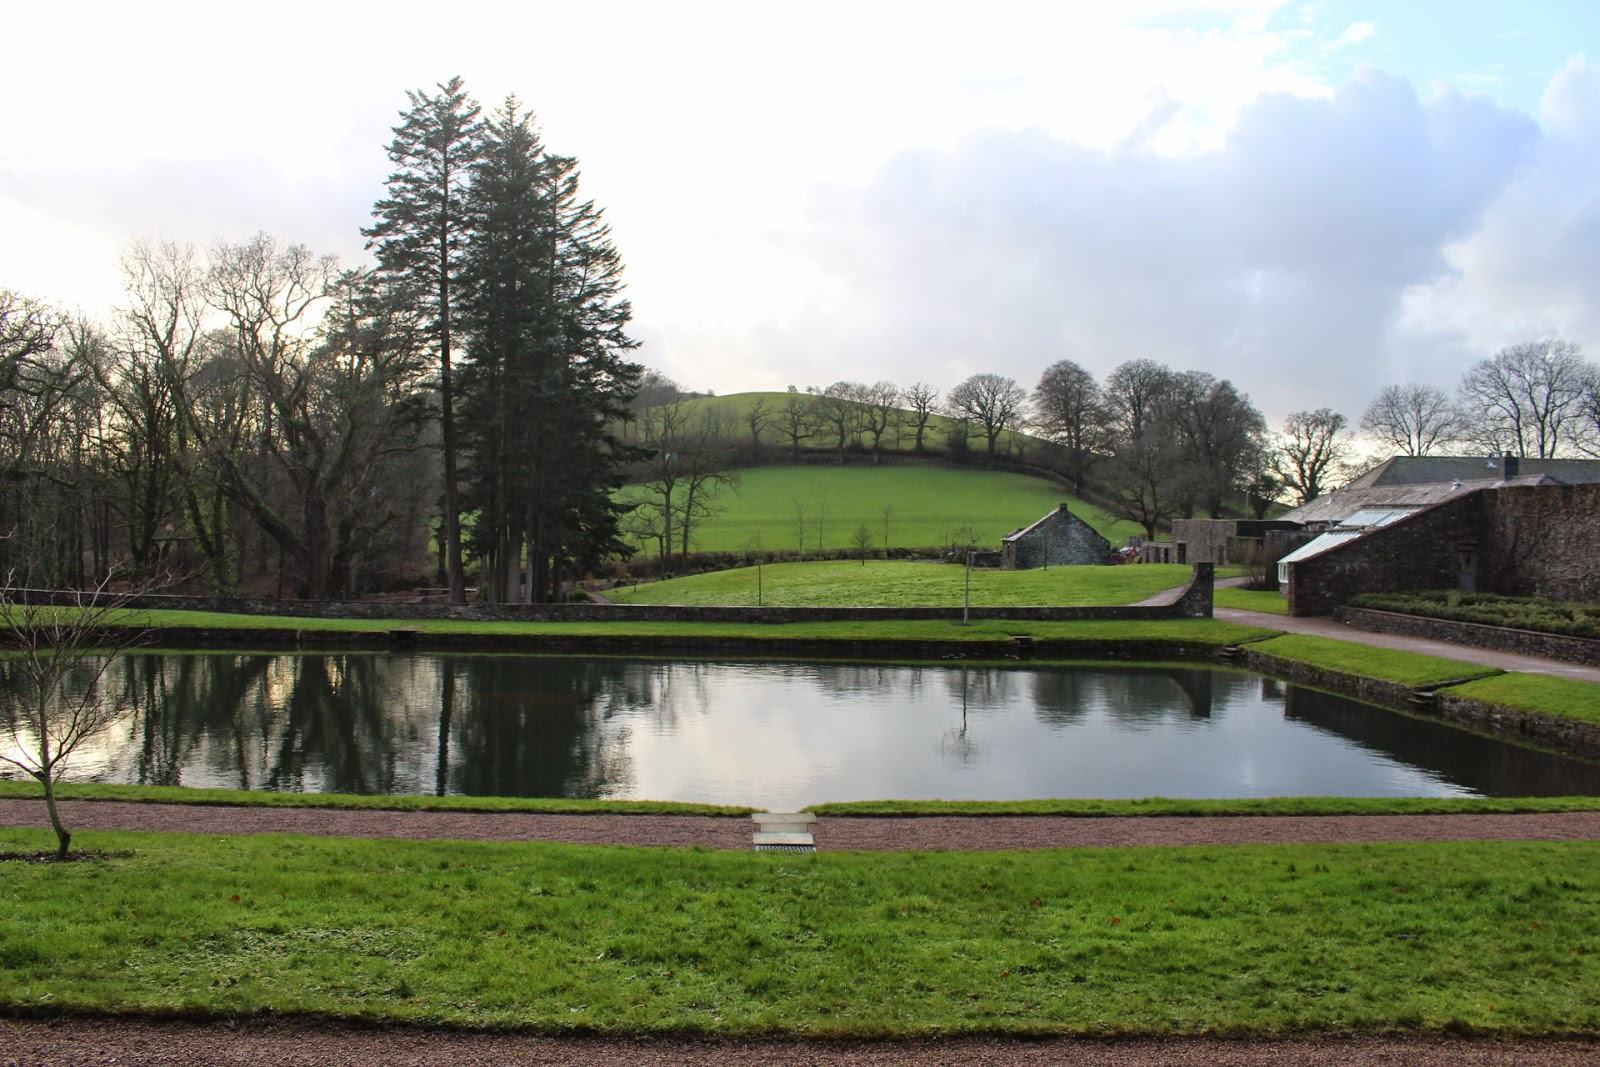 Photo showing the use of the landscape surrounding Aberglasney garden